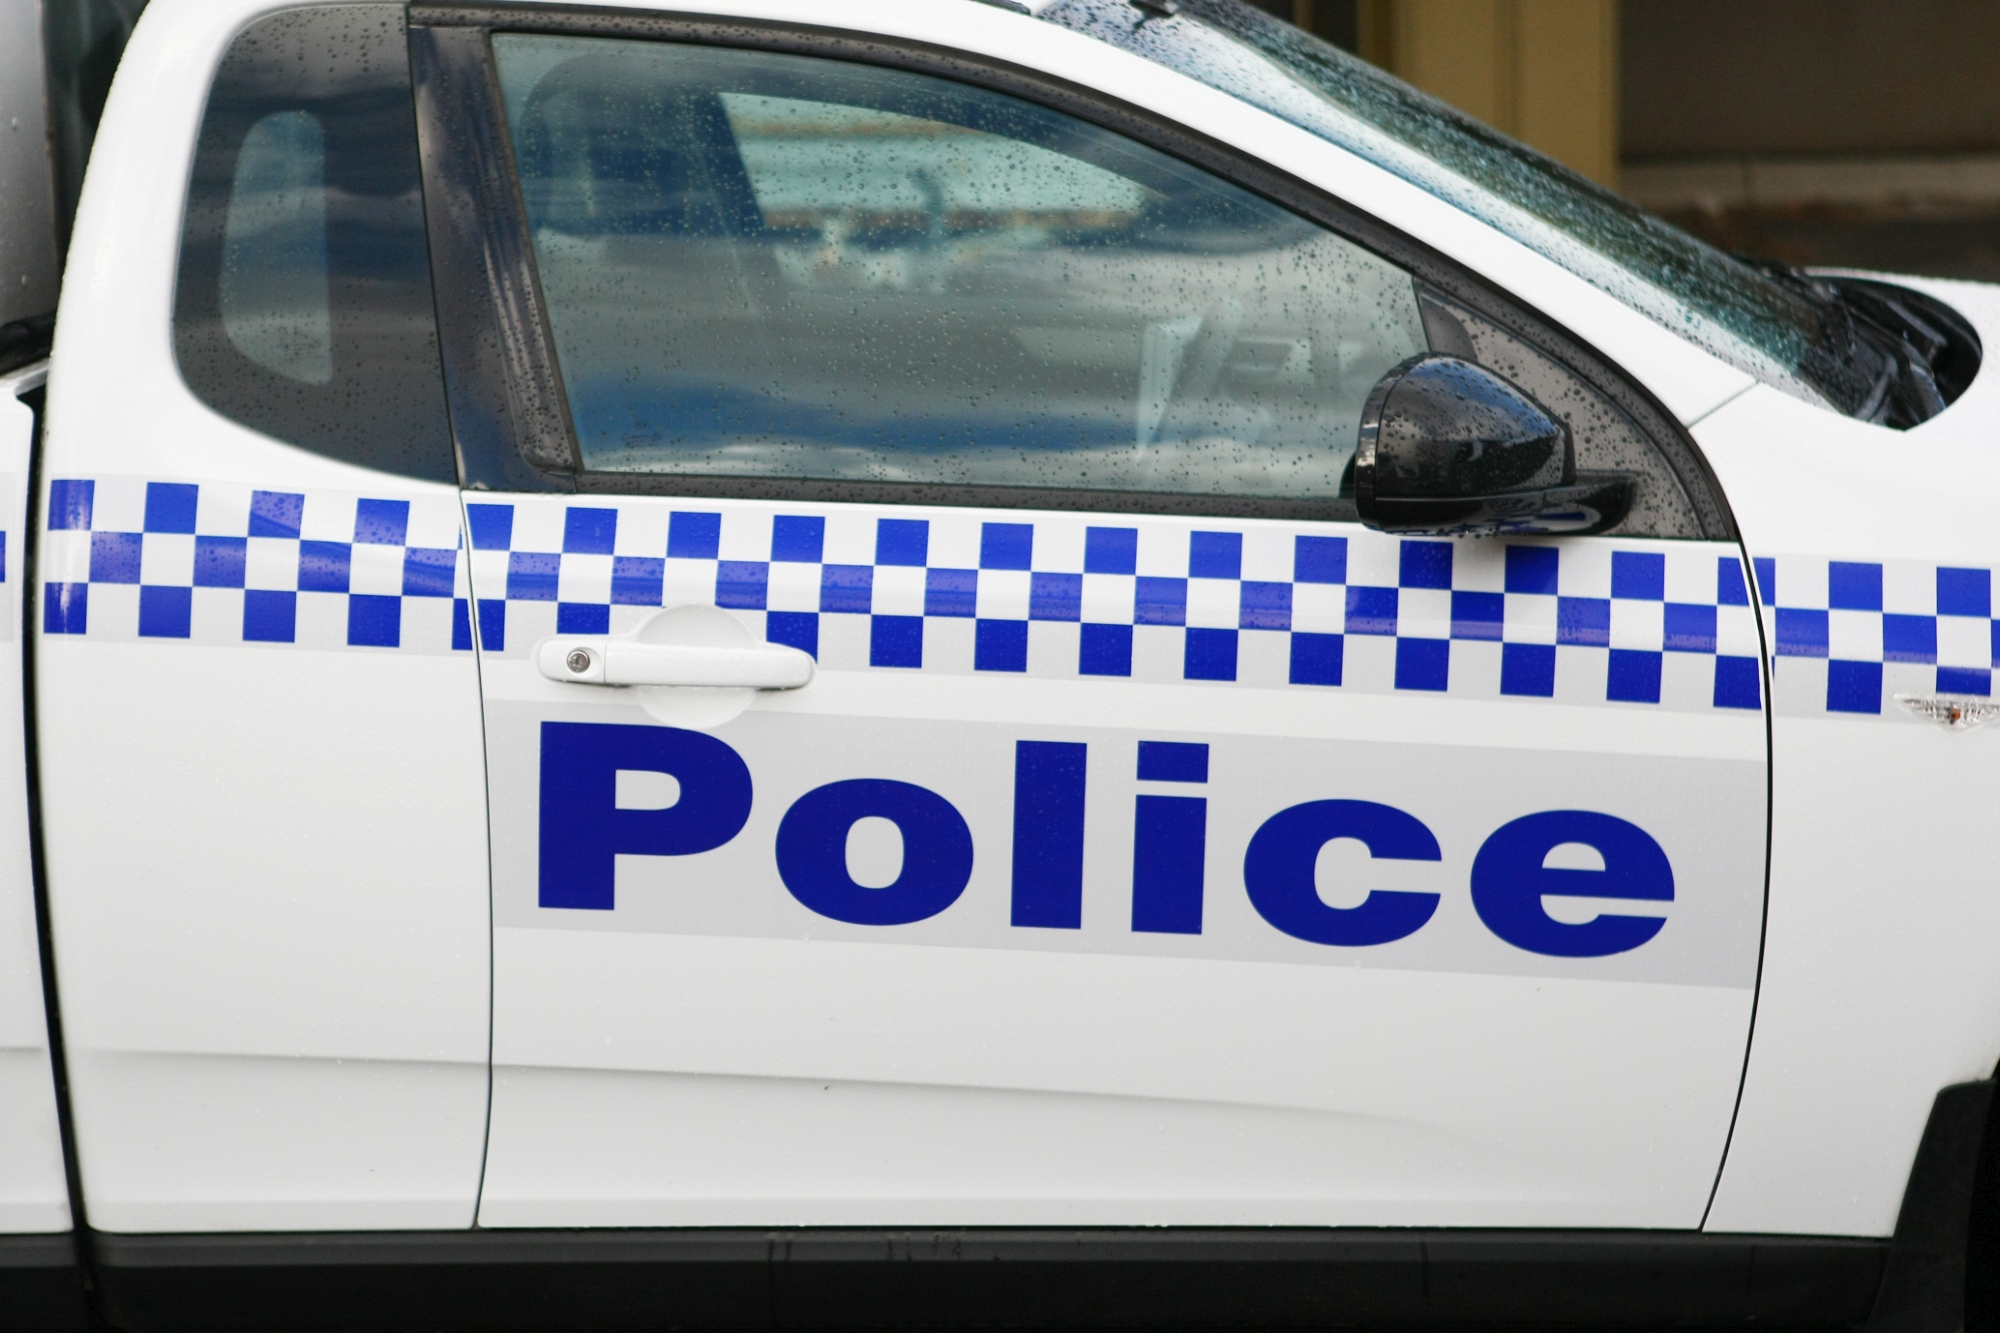 Clarkson Police Senior Sergeant Mal Jones said Mindarie Marina security officers called police to a break-in at the fenced multi-storey building site on Salford Promenade about 4am on August 29.